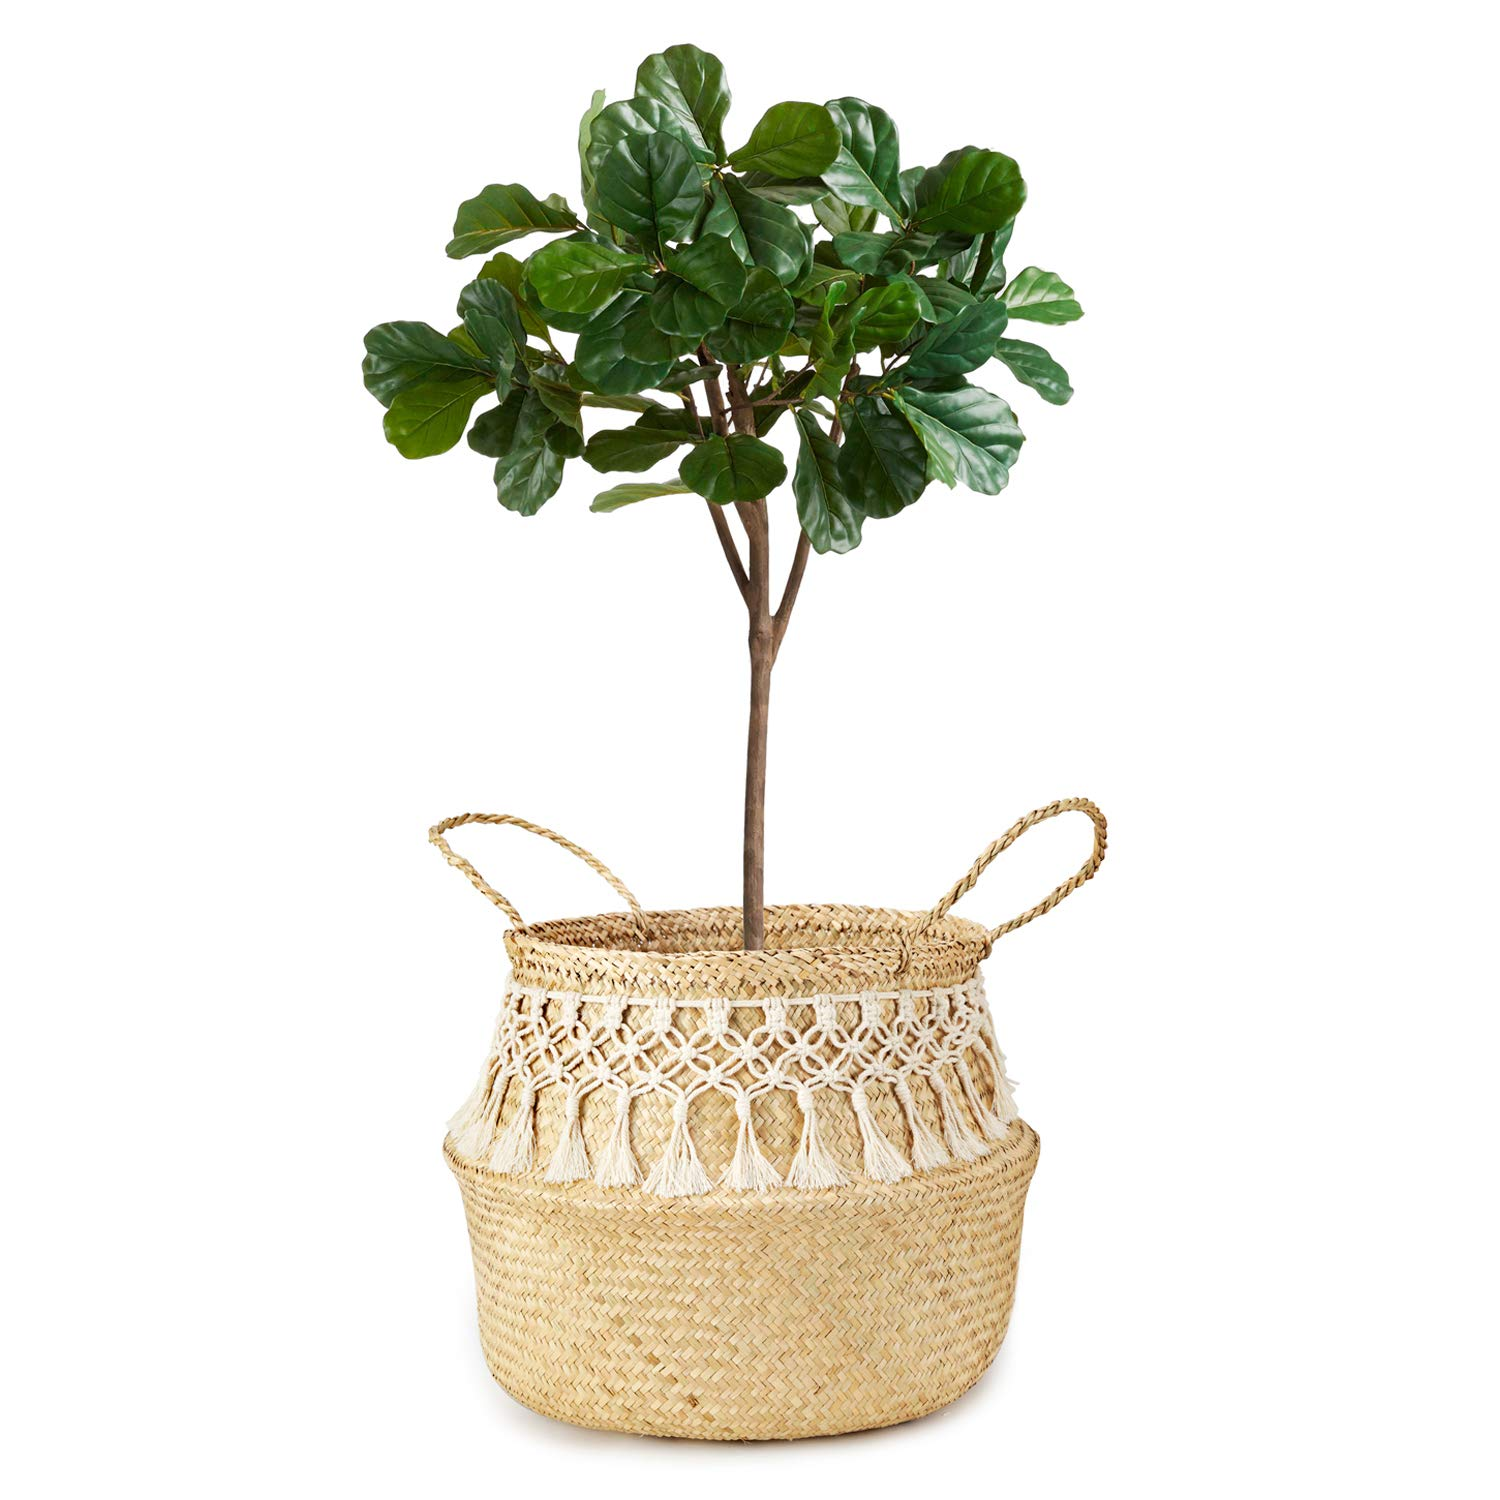 225 & Mkono Seagrass Belly Basket Plant Pot Cover Laundry Storage ...